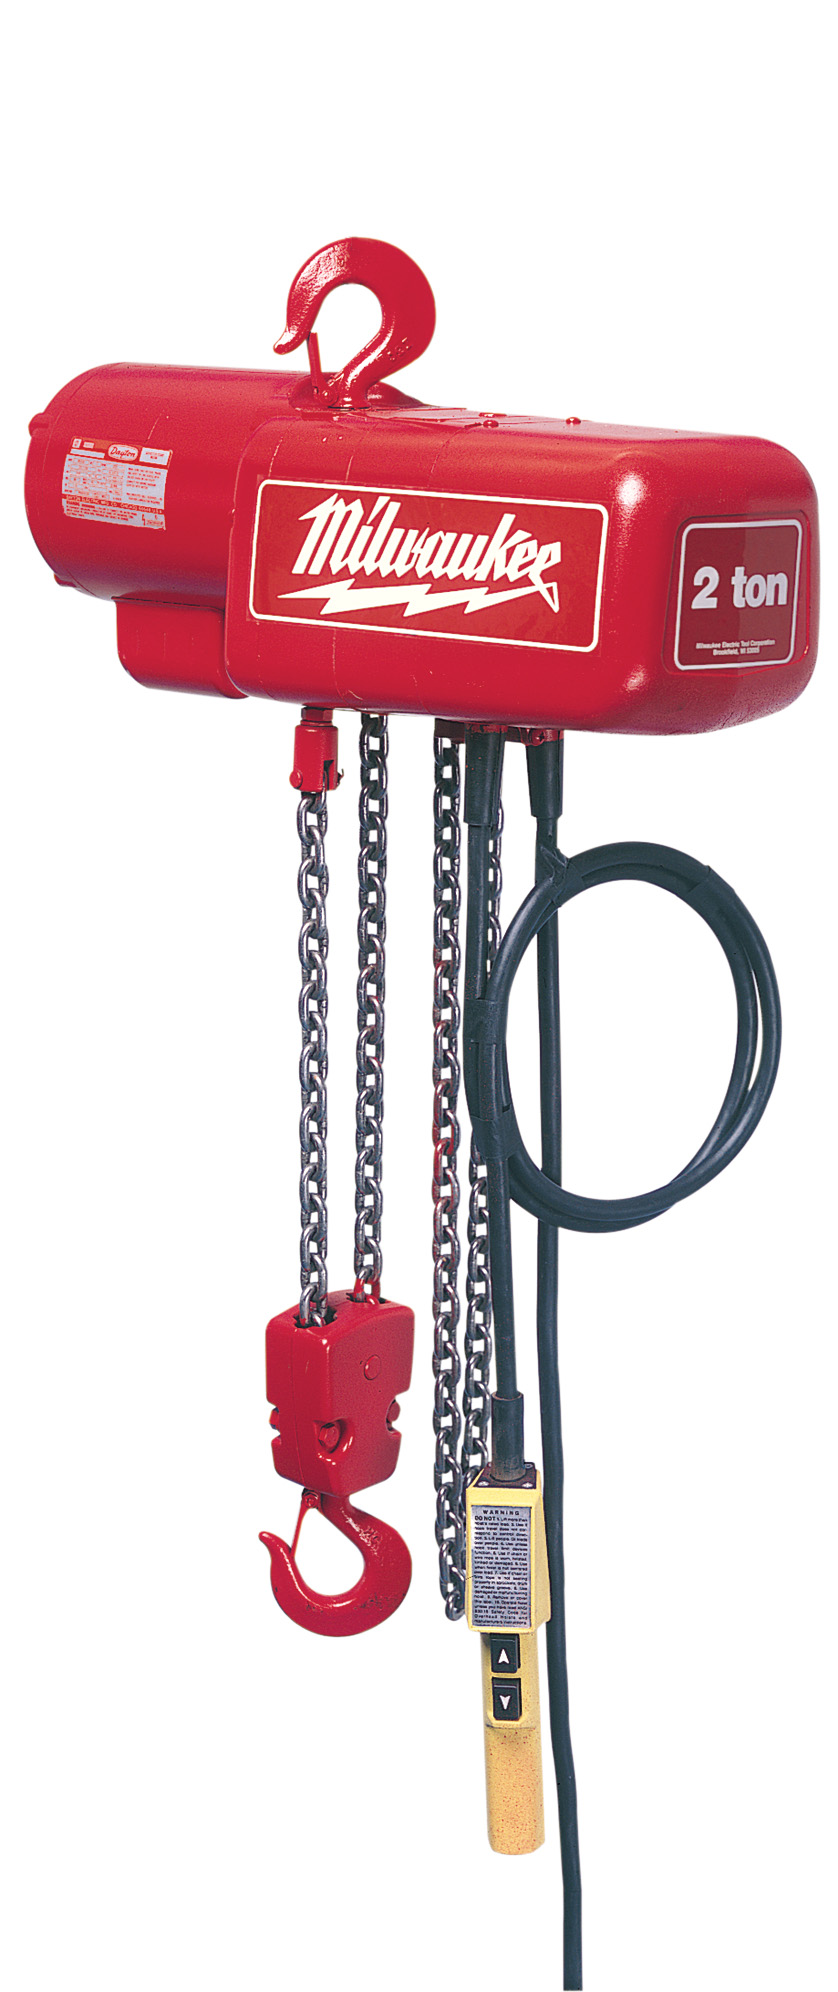 Milwaukee® 9573 1-Phase Lightweight Electric Chain Hoist, 2 ton Load, 20 ft H Lifting, 1 hp Power Rating, 115 to 230 VAC